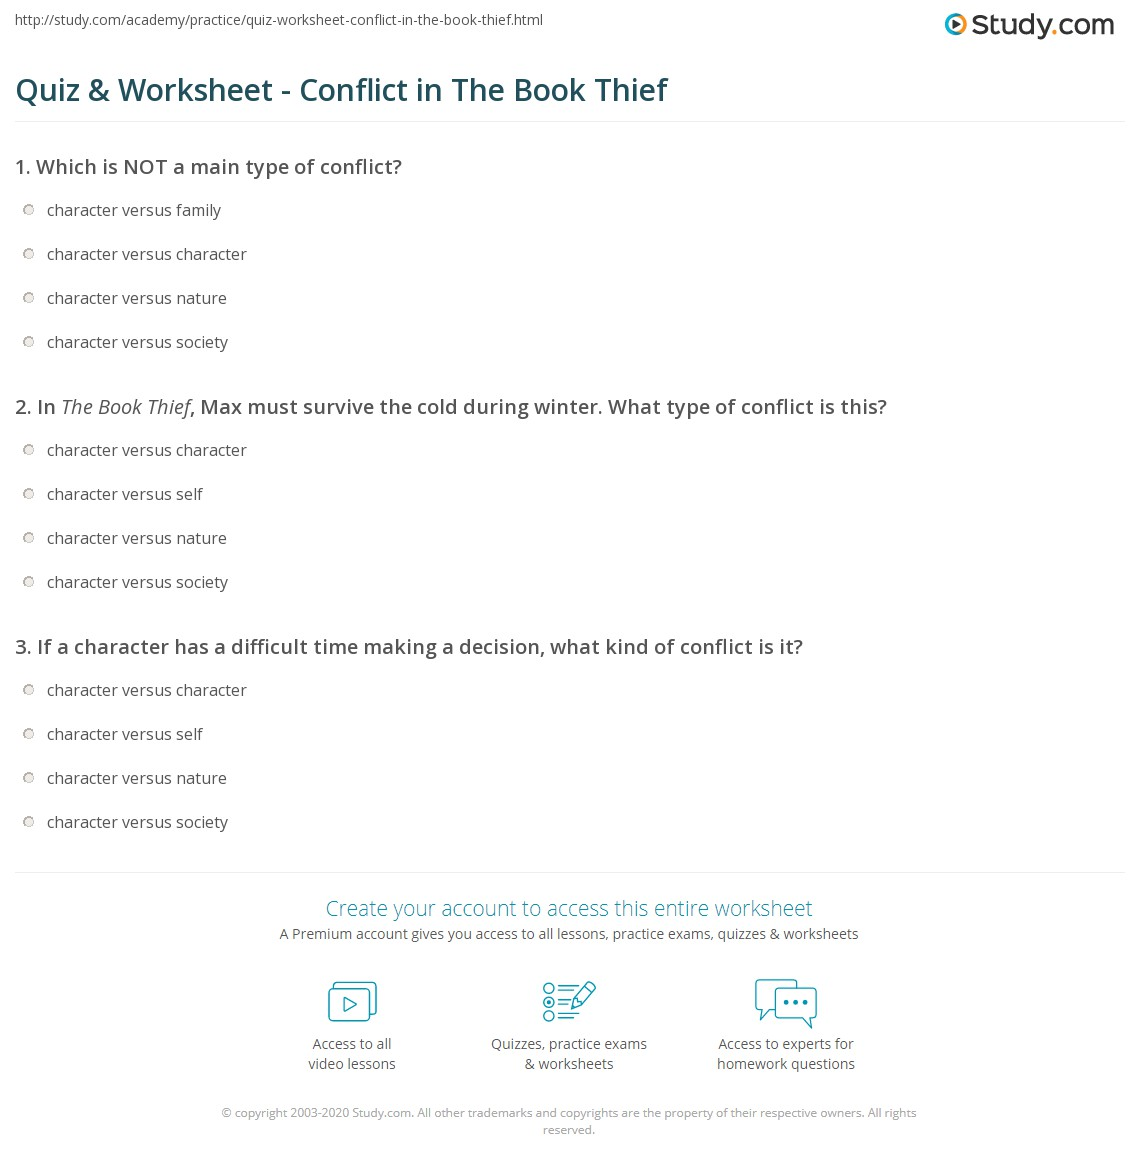 quiz worksheet conflict in the book thief com print conflict in the book thief worksheet